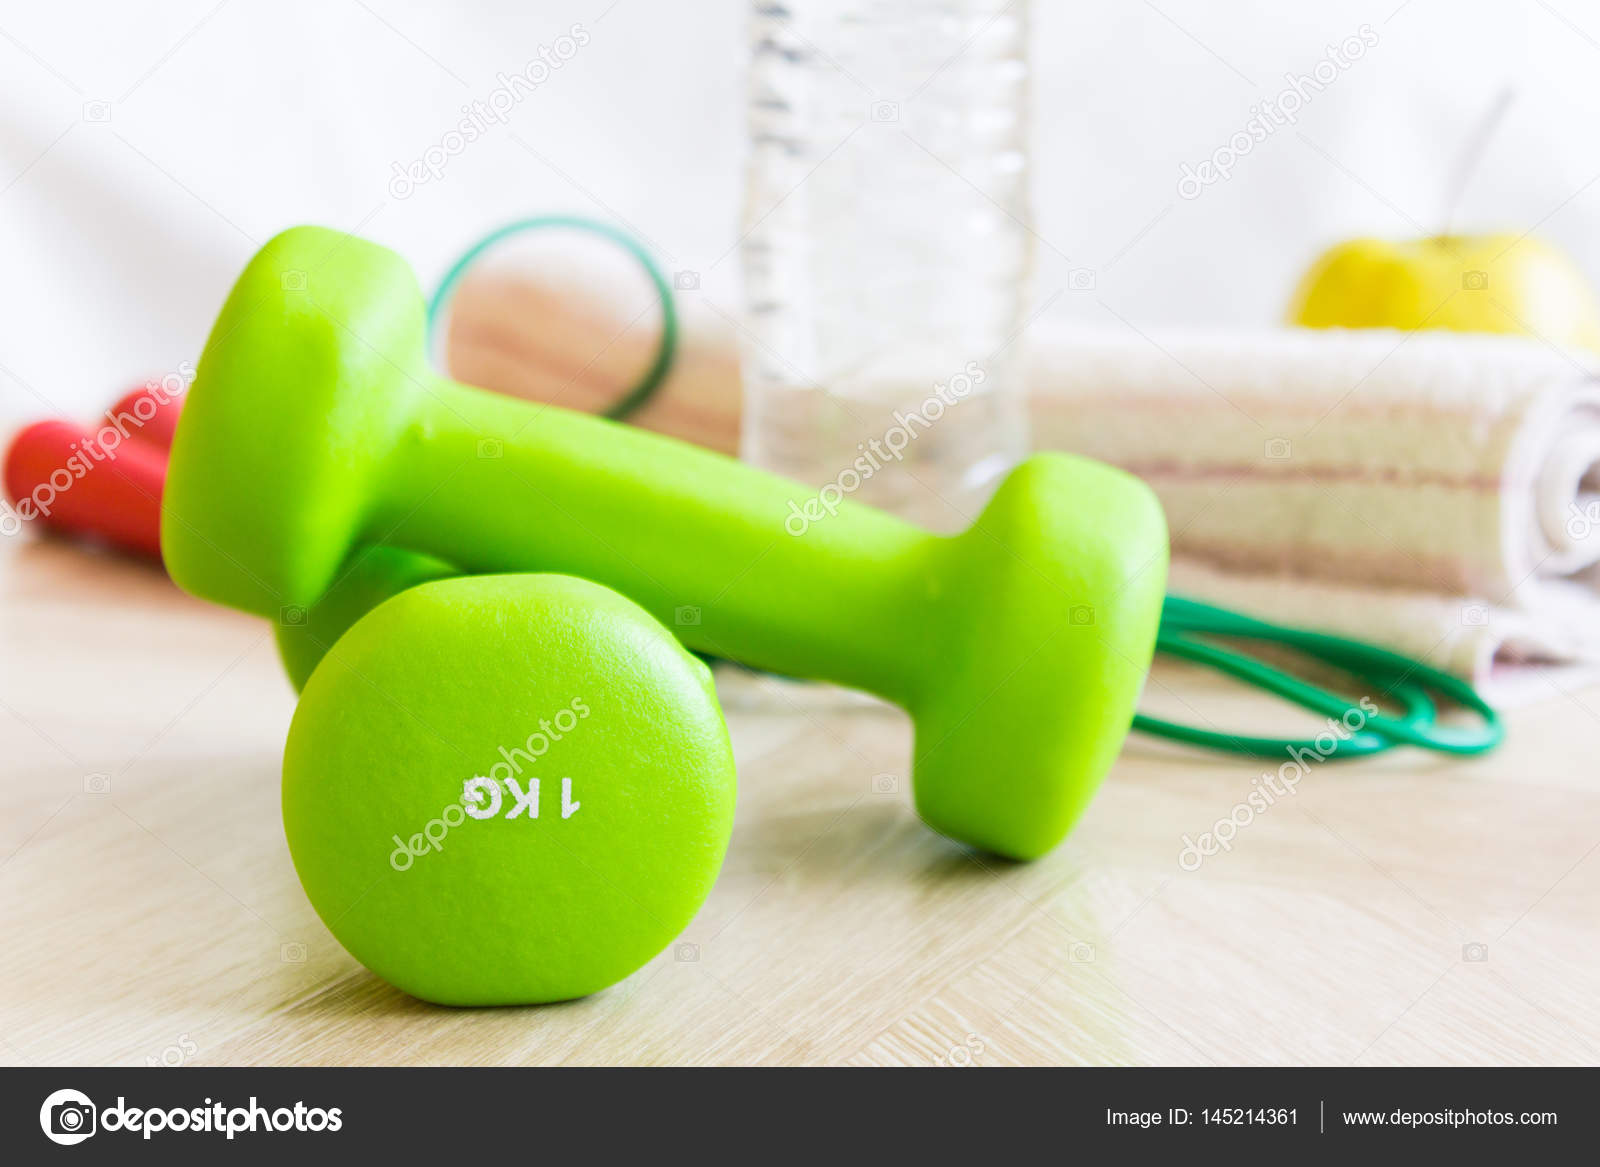 Green dumbbells, water bottle, apple, jump rope and a towel